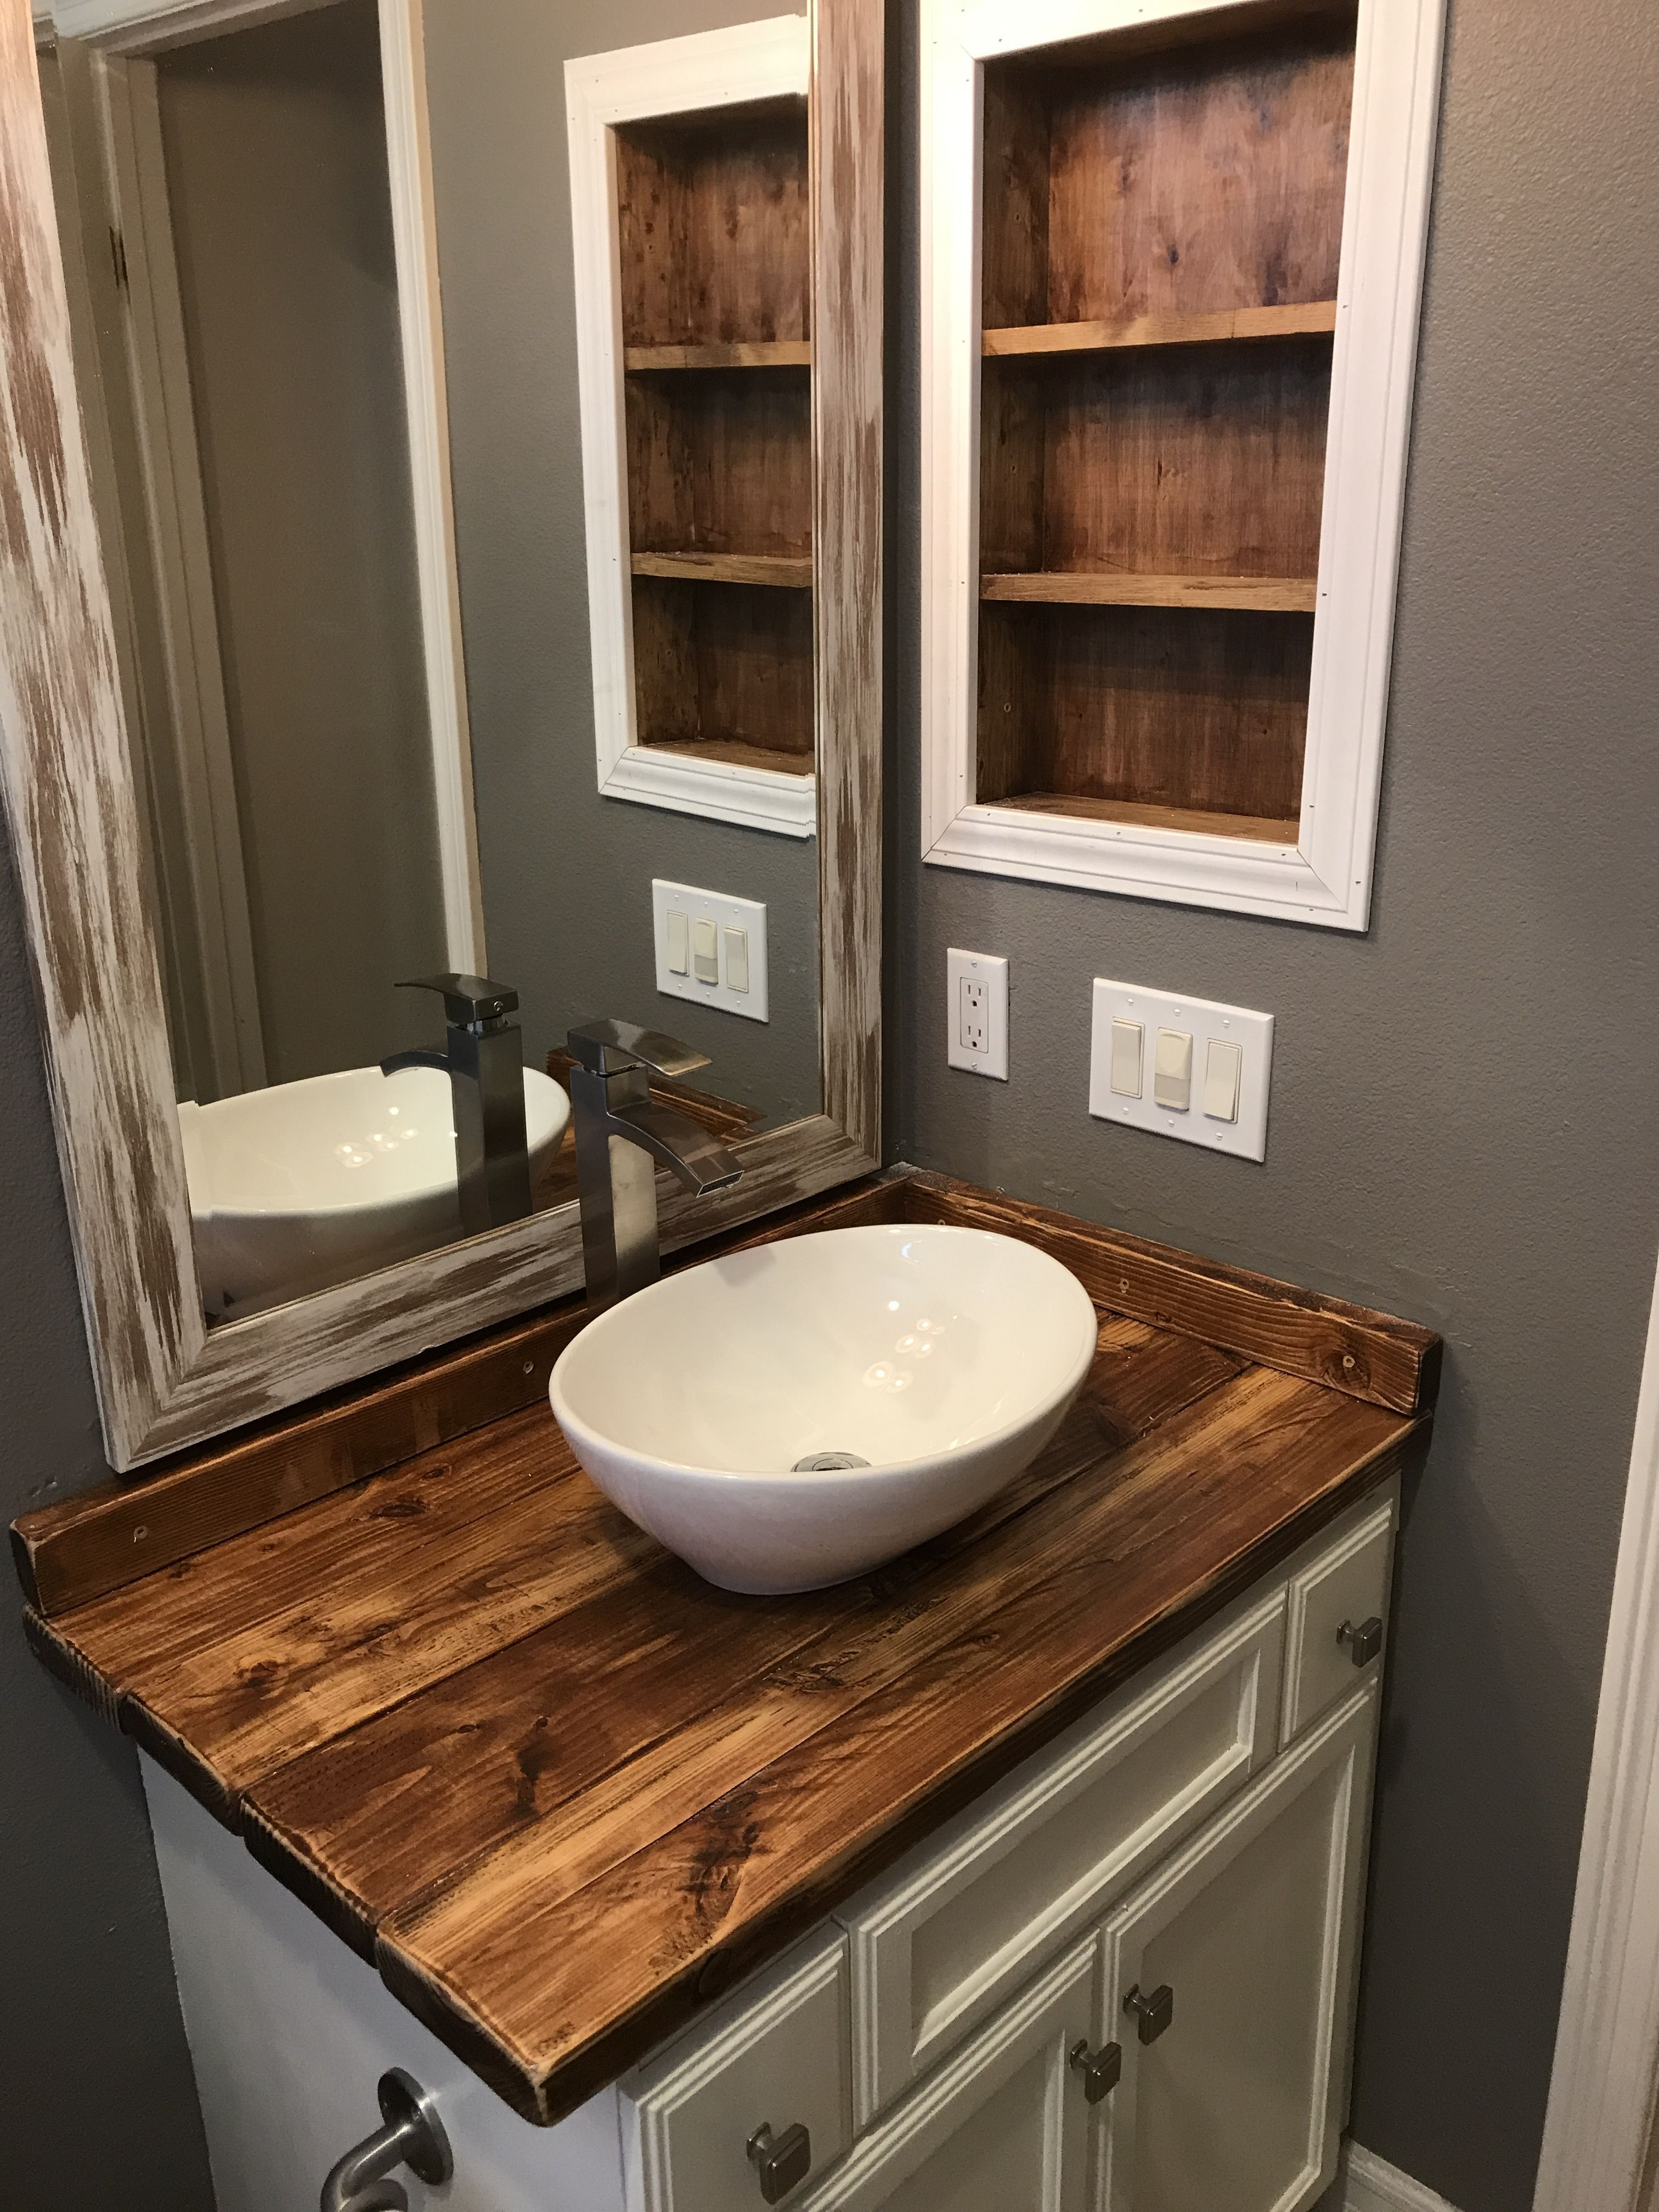 Tips & Ideas: Outstanding Kohler Faucet Parts For ...